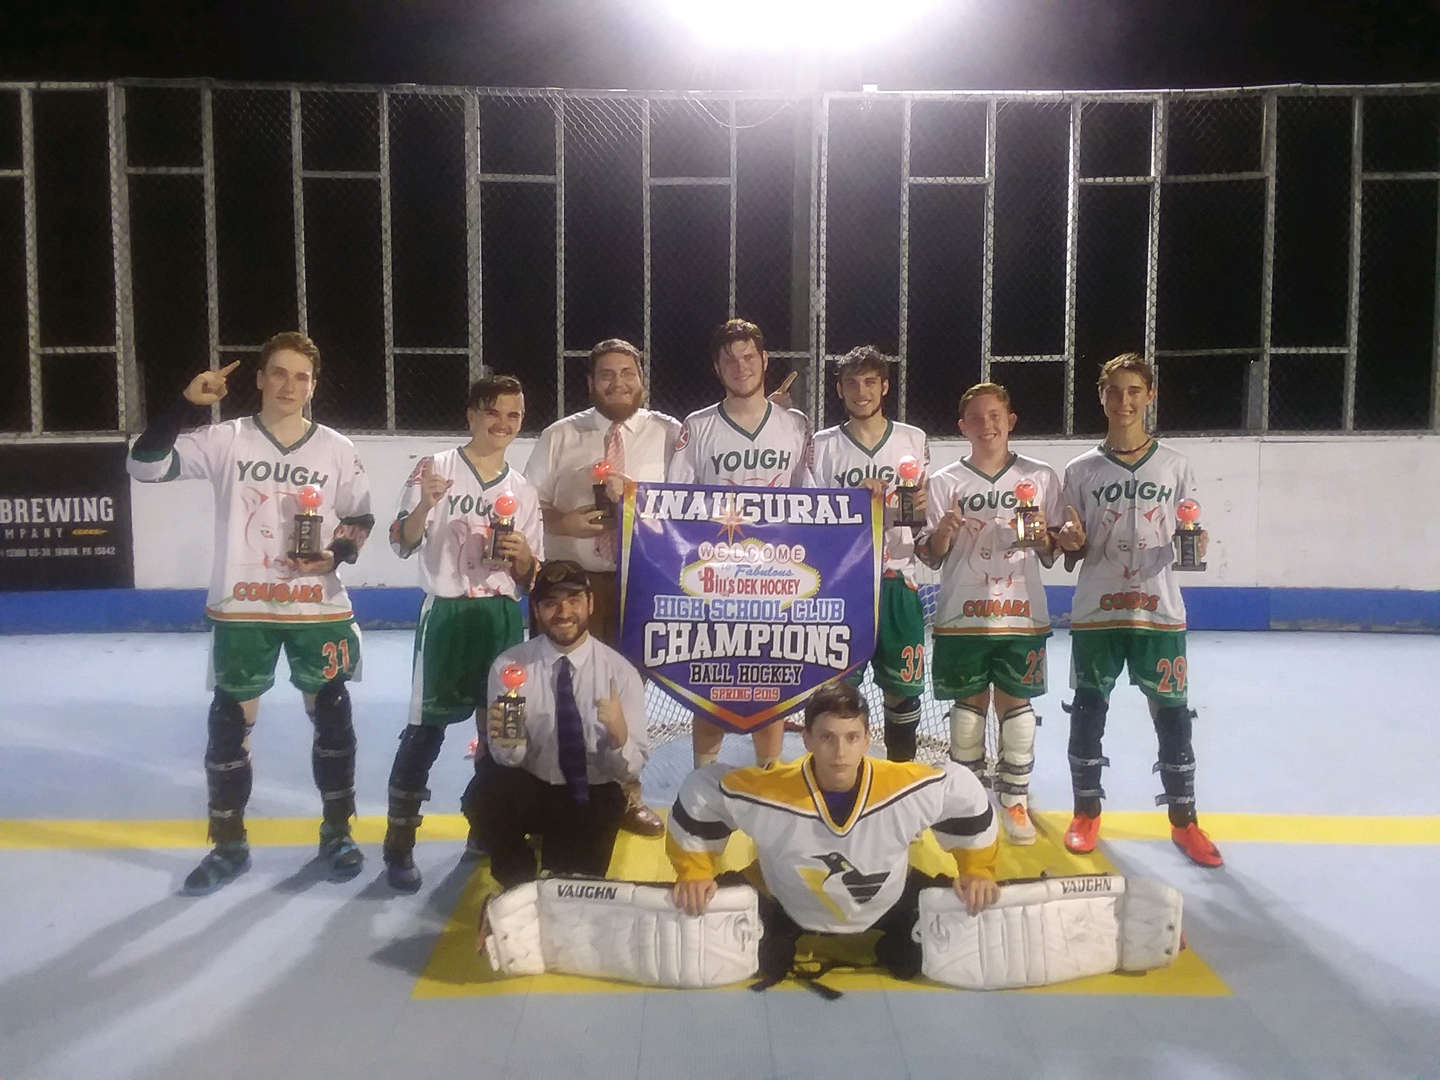 Congrats to our Yough Students who played in a Dek Hockey League. They are the High School Club Champions - Spring 2019.